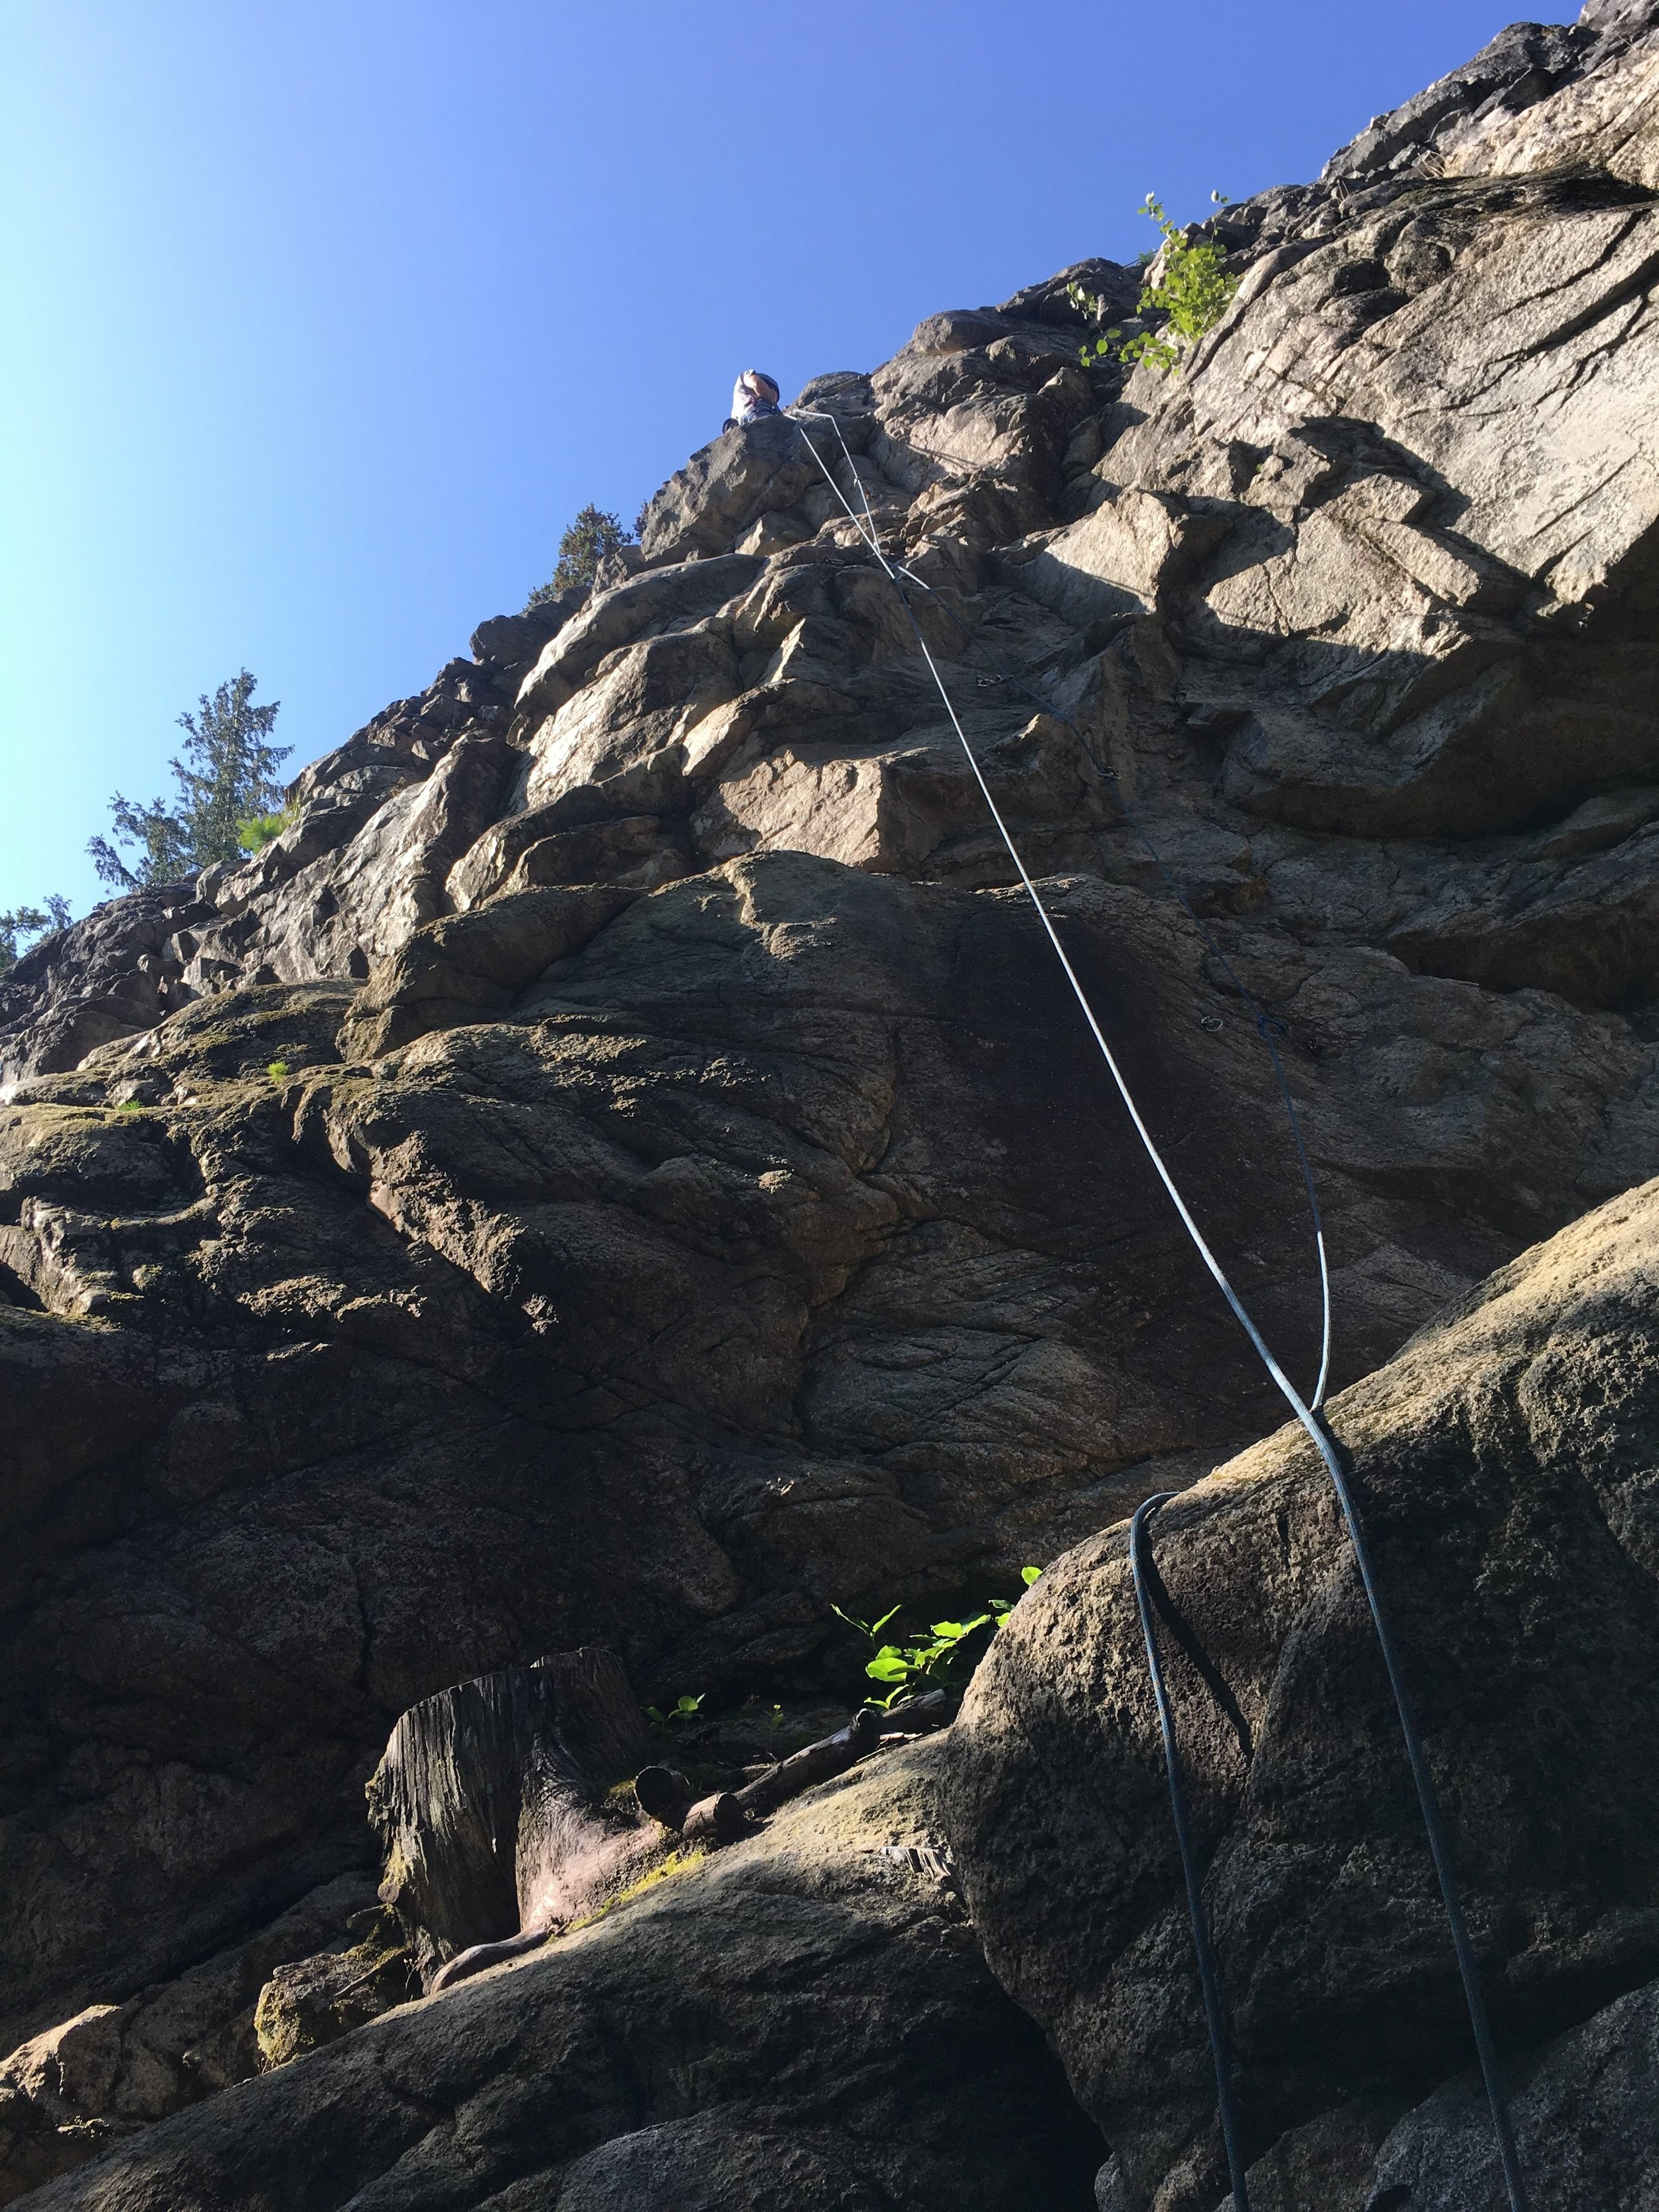 Mike on his first rappel!